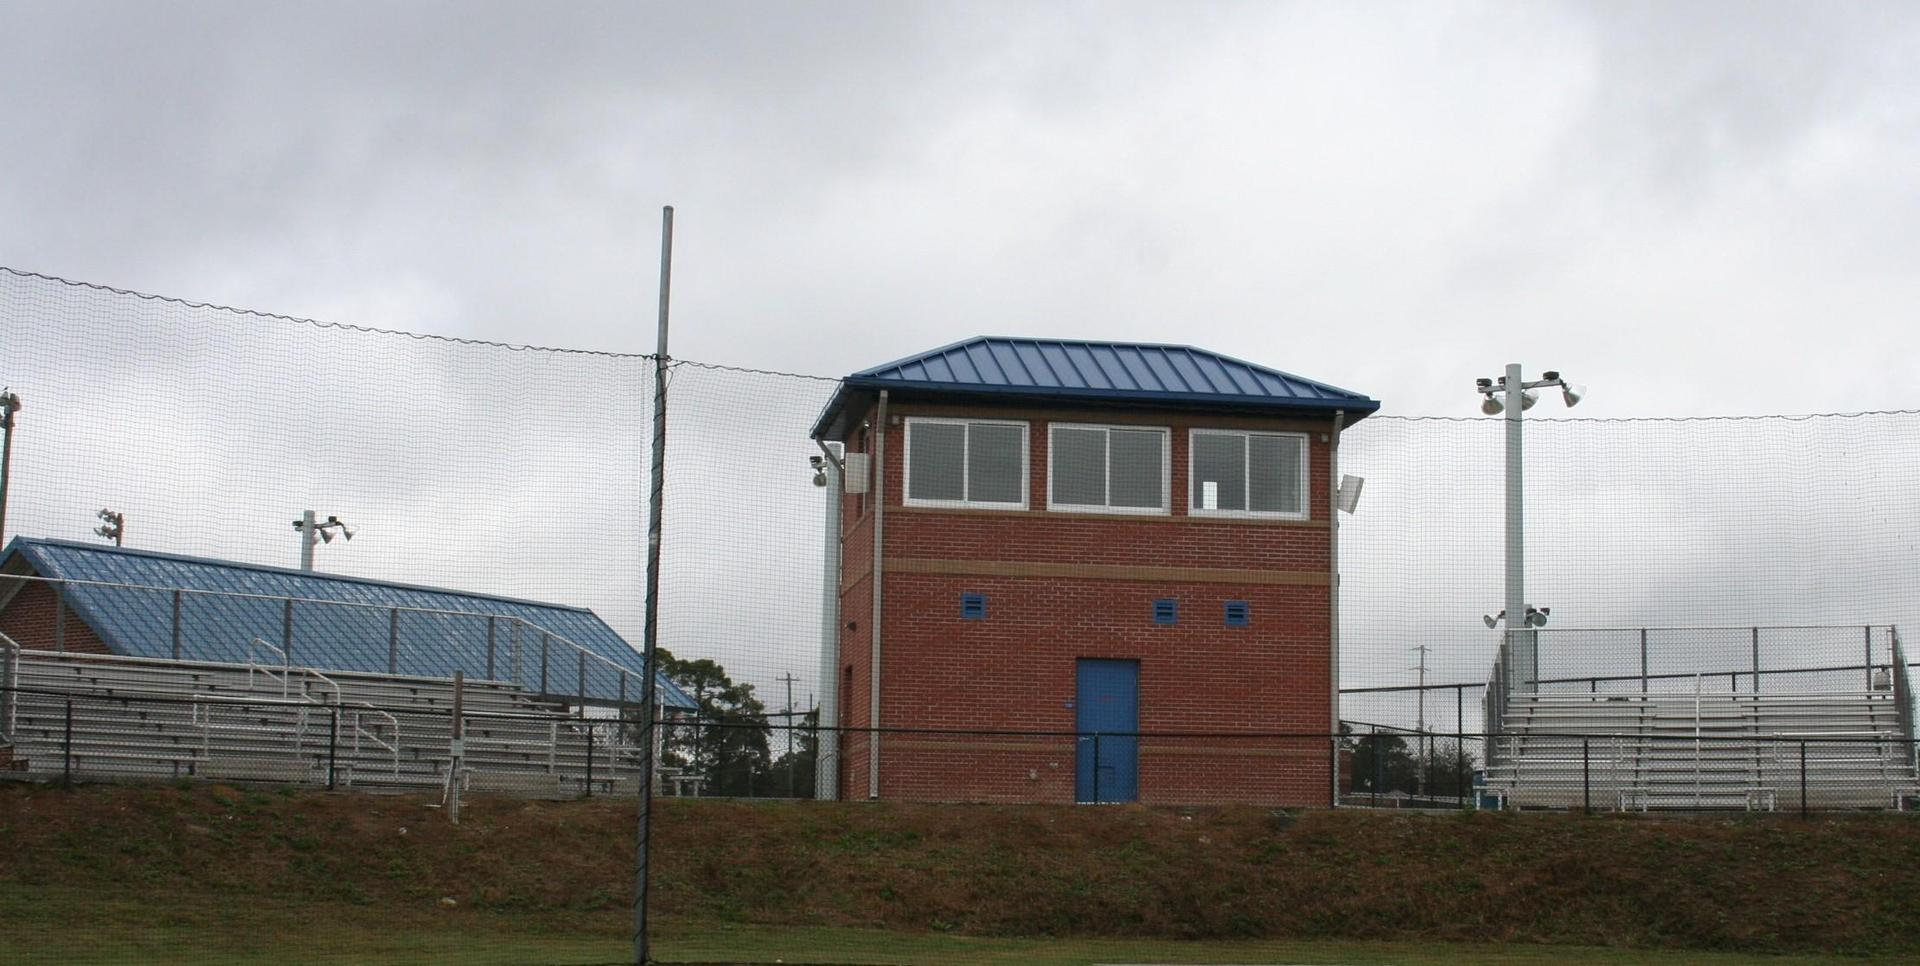 NEW BASEBALL PRESS BOX PICTURED FROM THE OUTFIELD